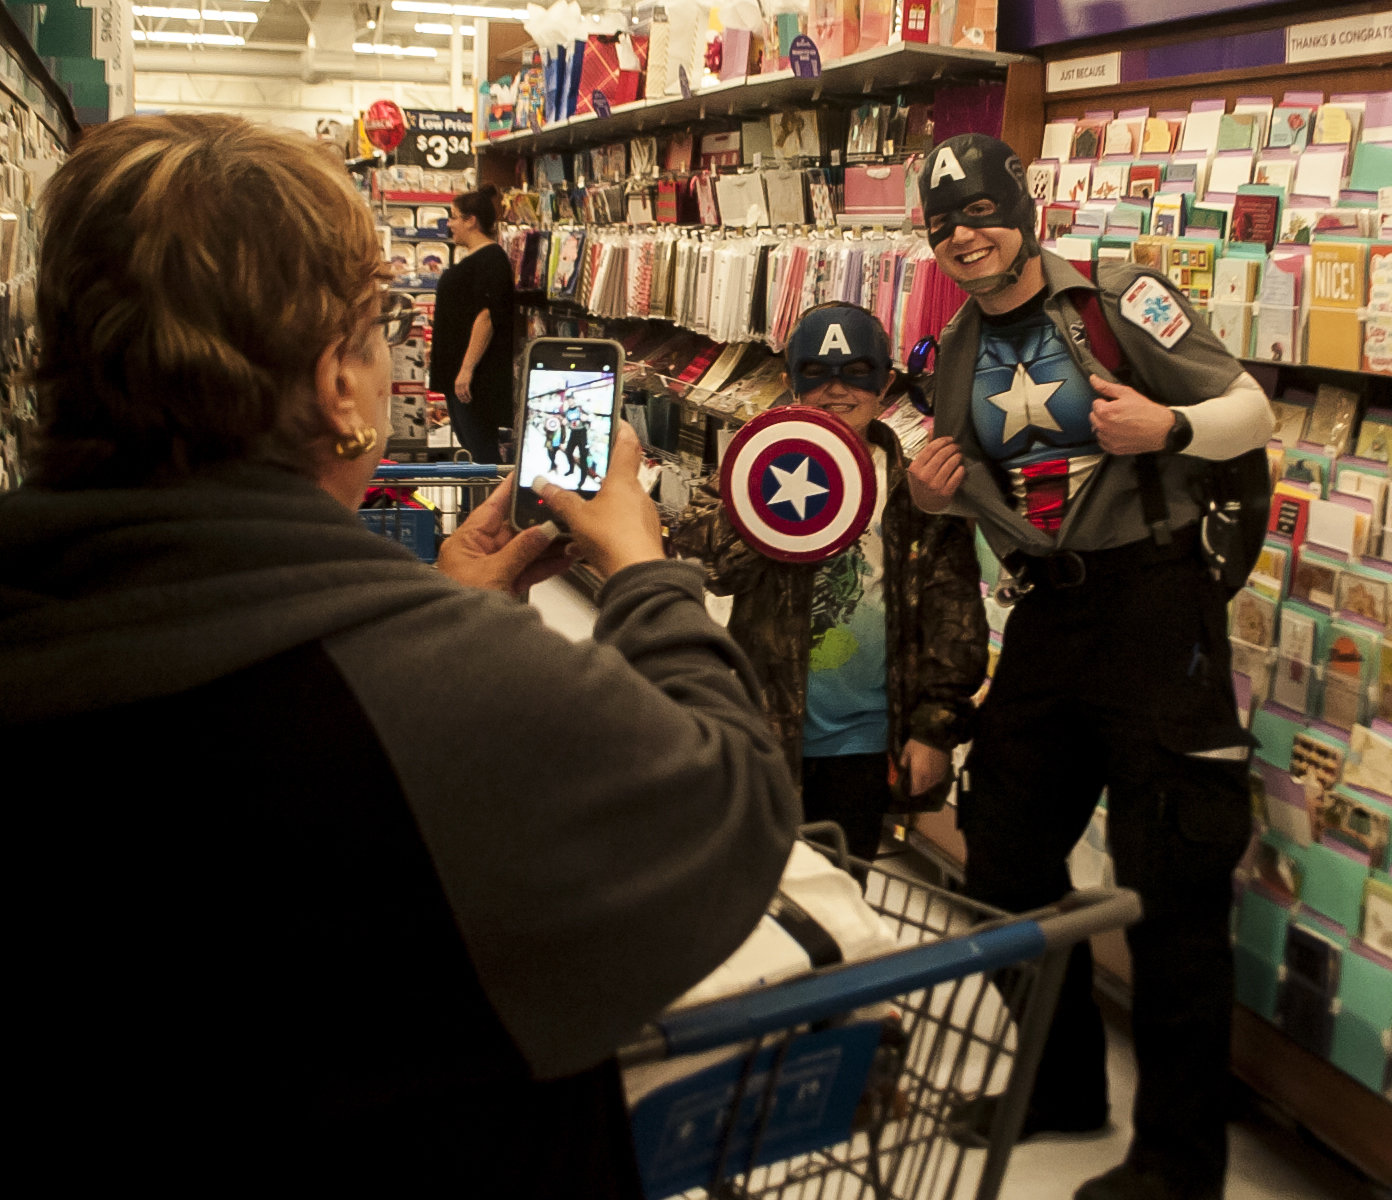 MetroAtlanta's Beau Witcher, right, came dressed as Captain America to shop with Mathea Chambers at Saturday's Shop with a Hero event at Walmart.